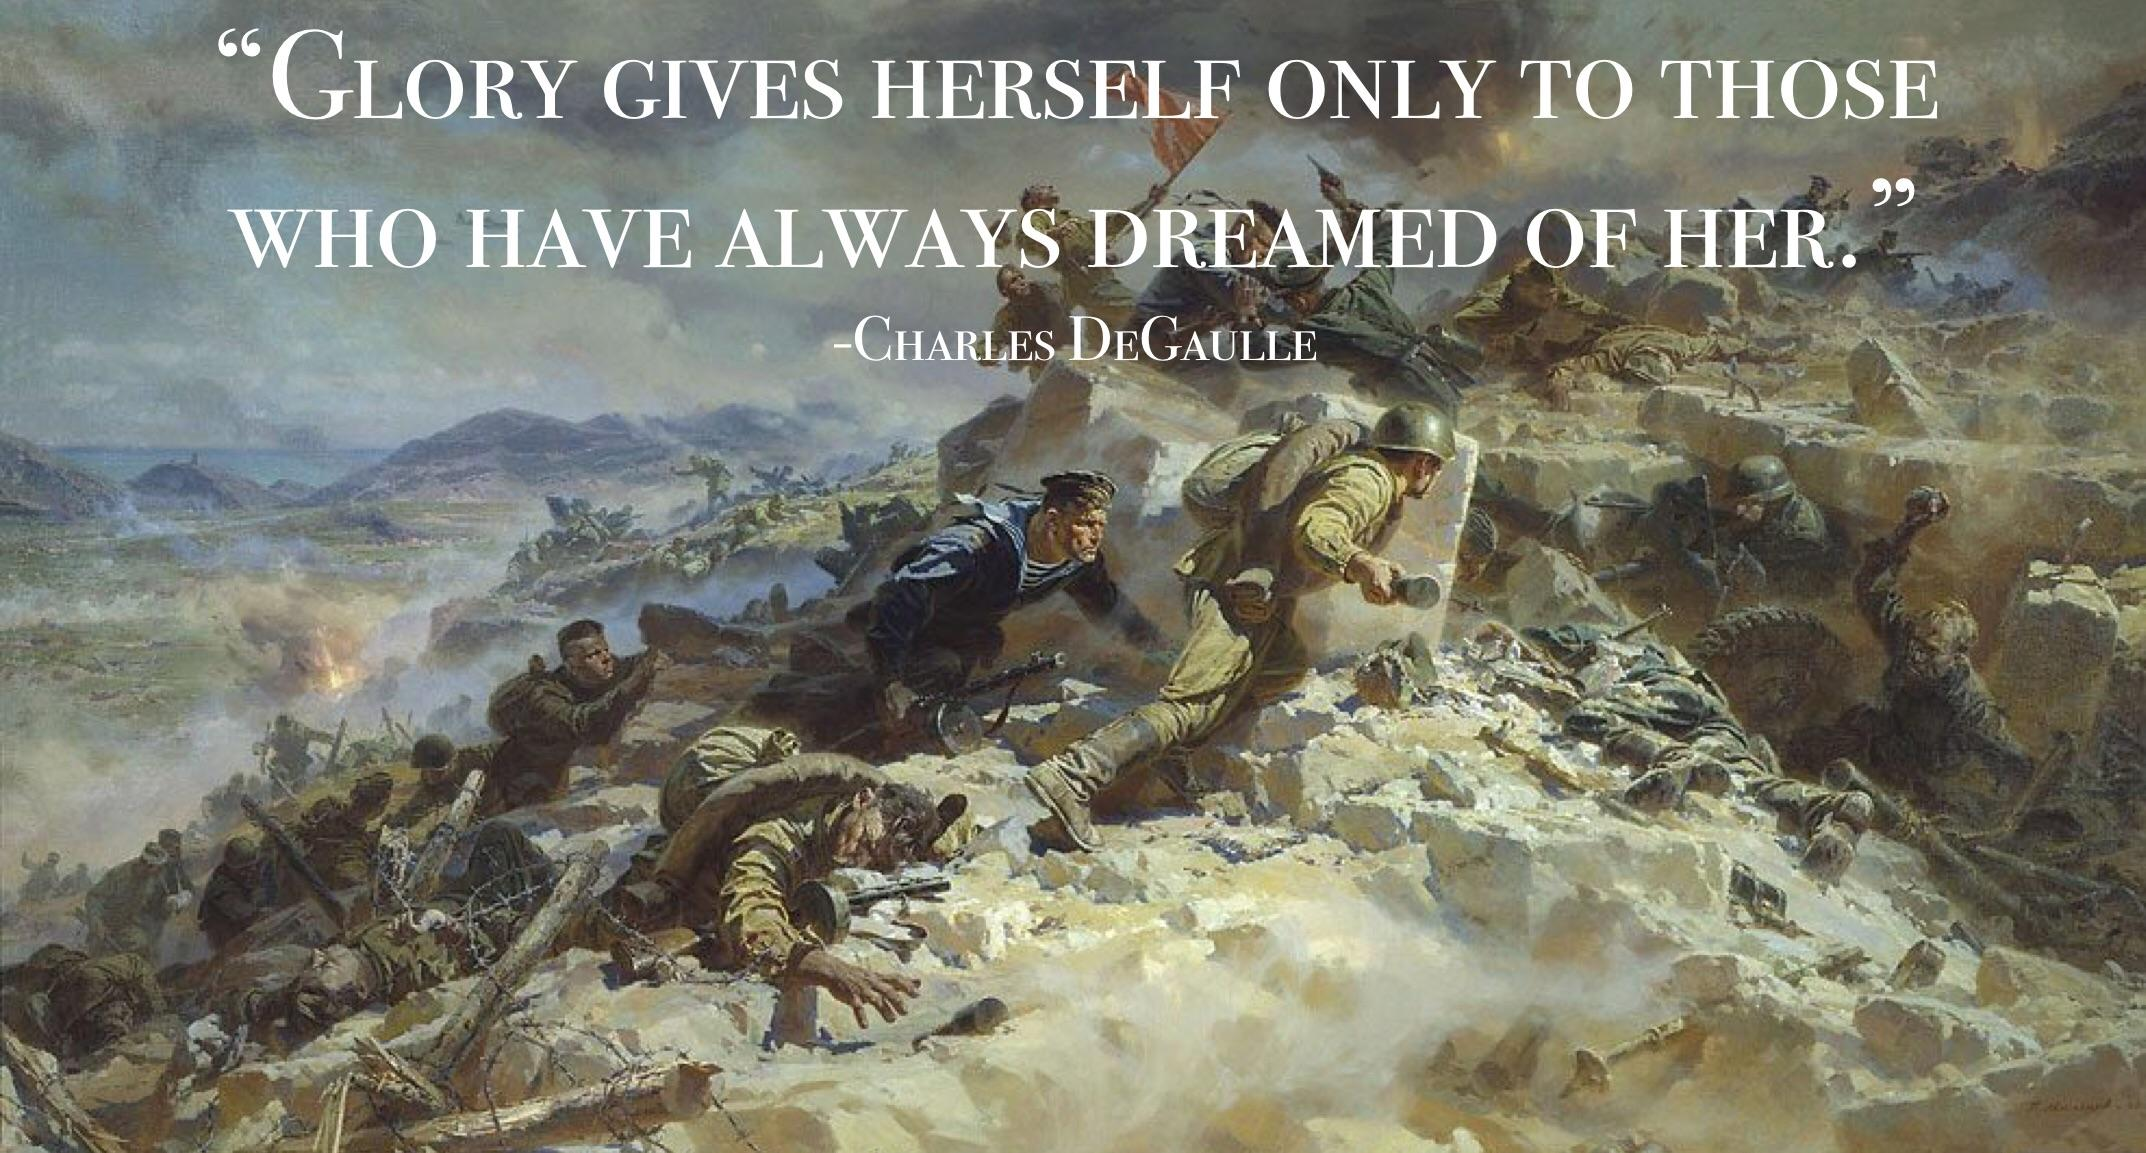 """Glory gives herself only to those who have always dreamed of her."" -Charles DeGaulle [2145×1150]"